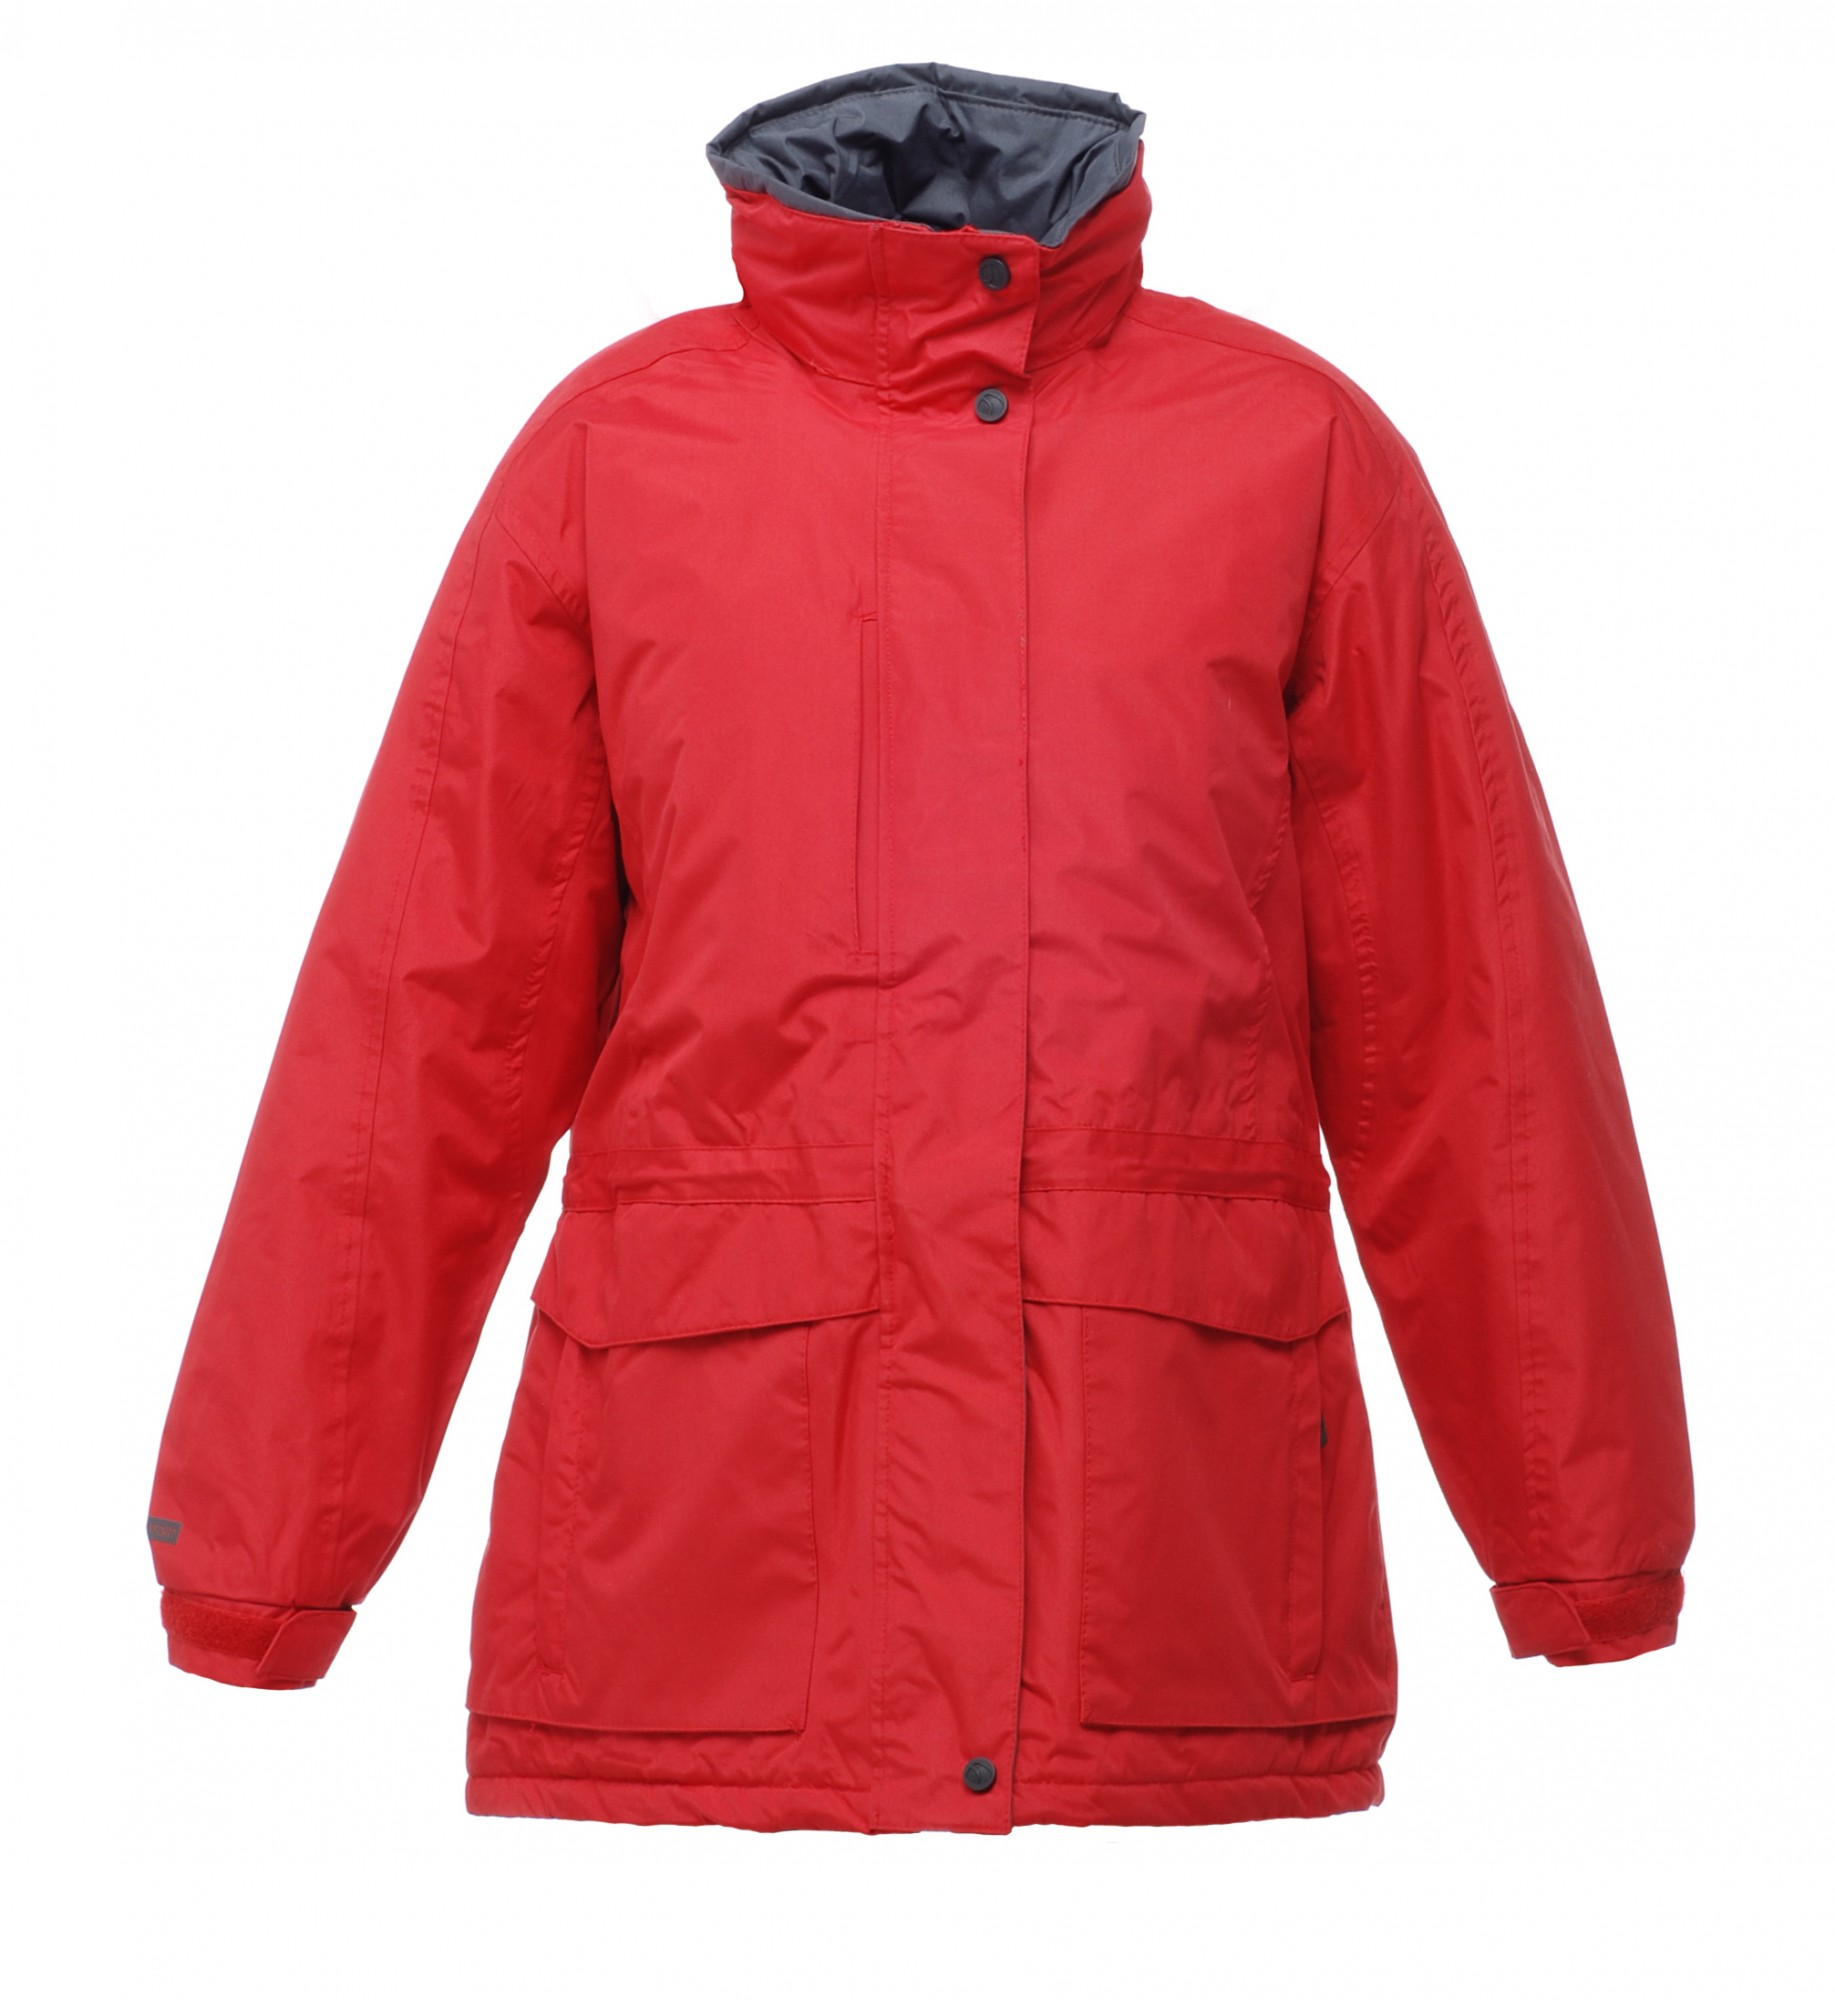 Regatta Womens Darby II Jacket